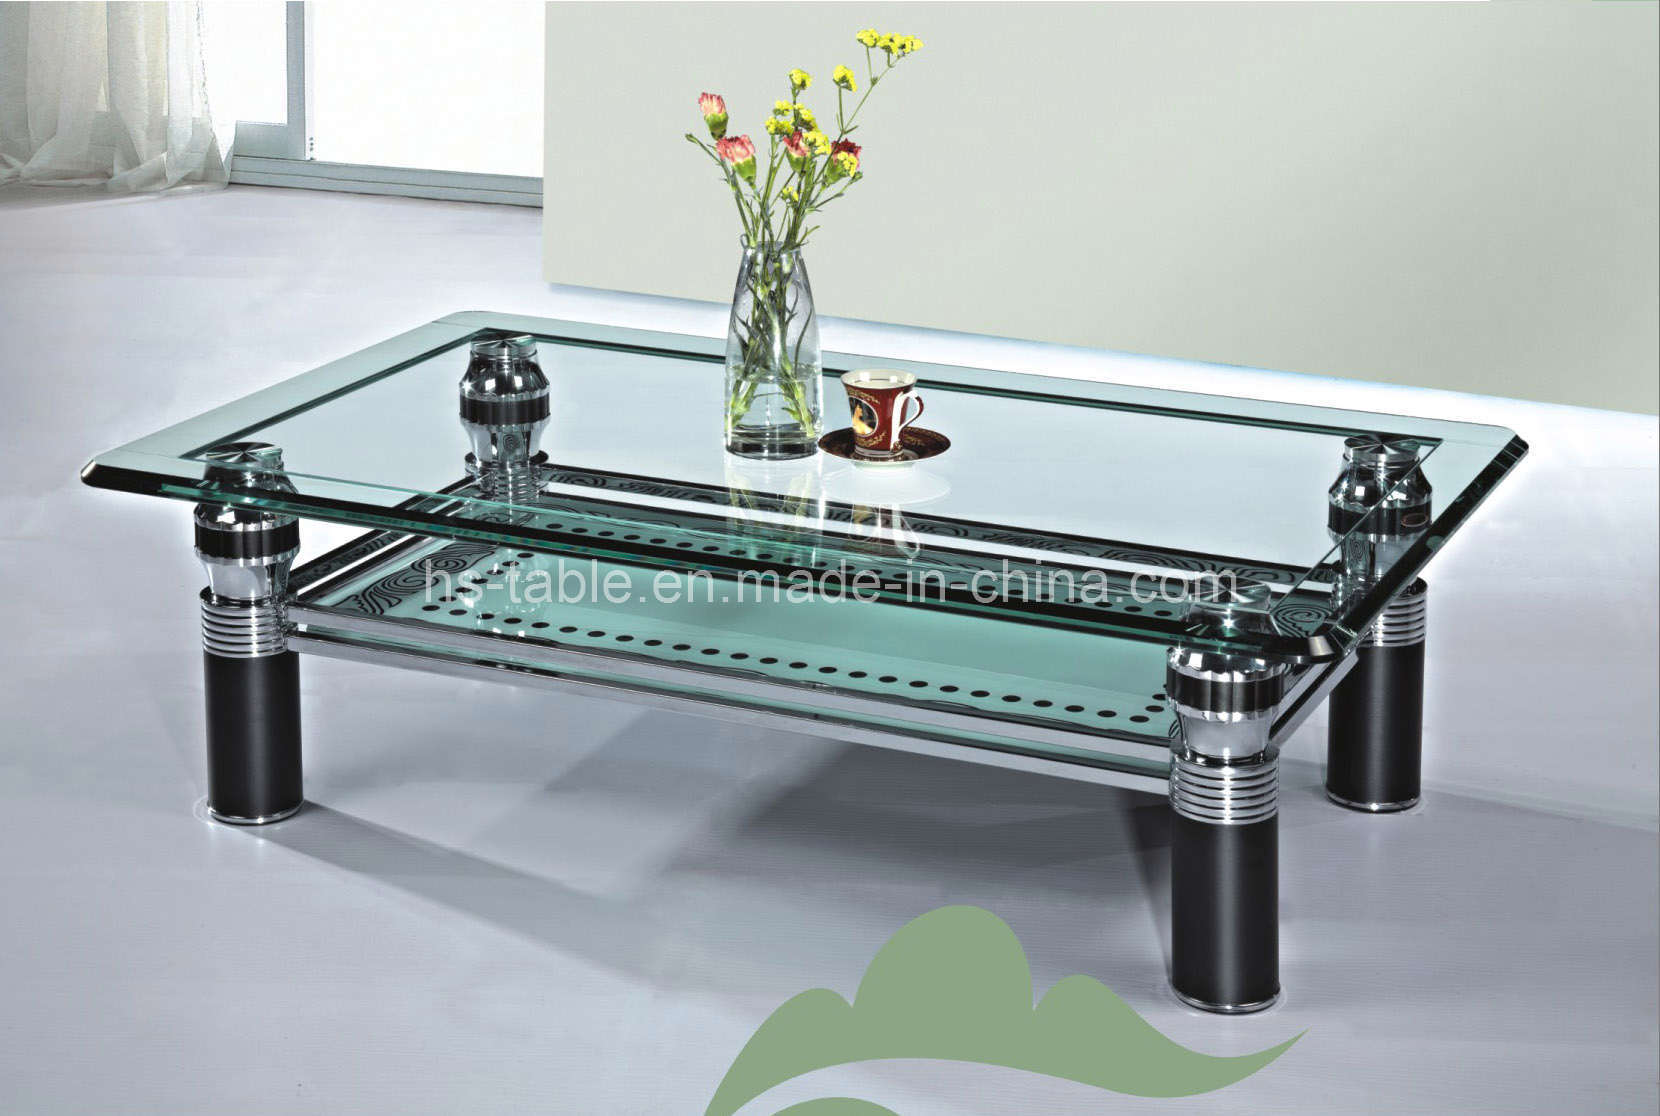 Glass Coffee Tables ~ China glass furniture coffee table